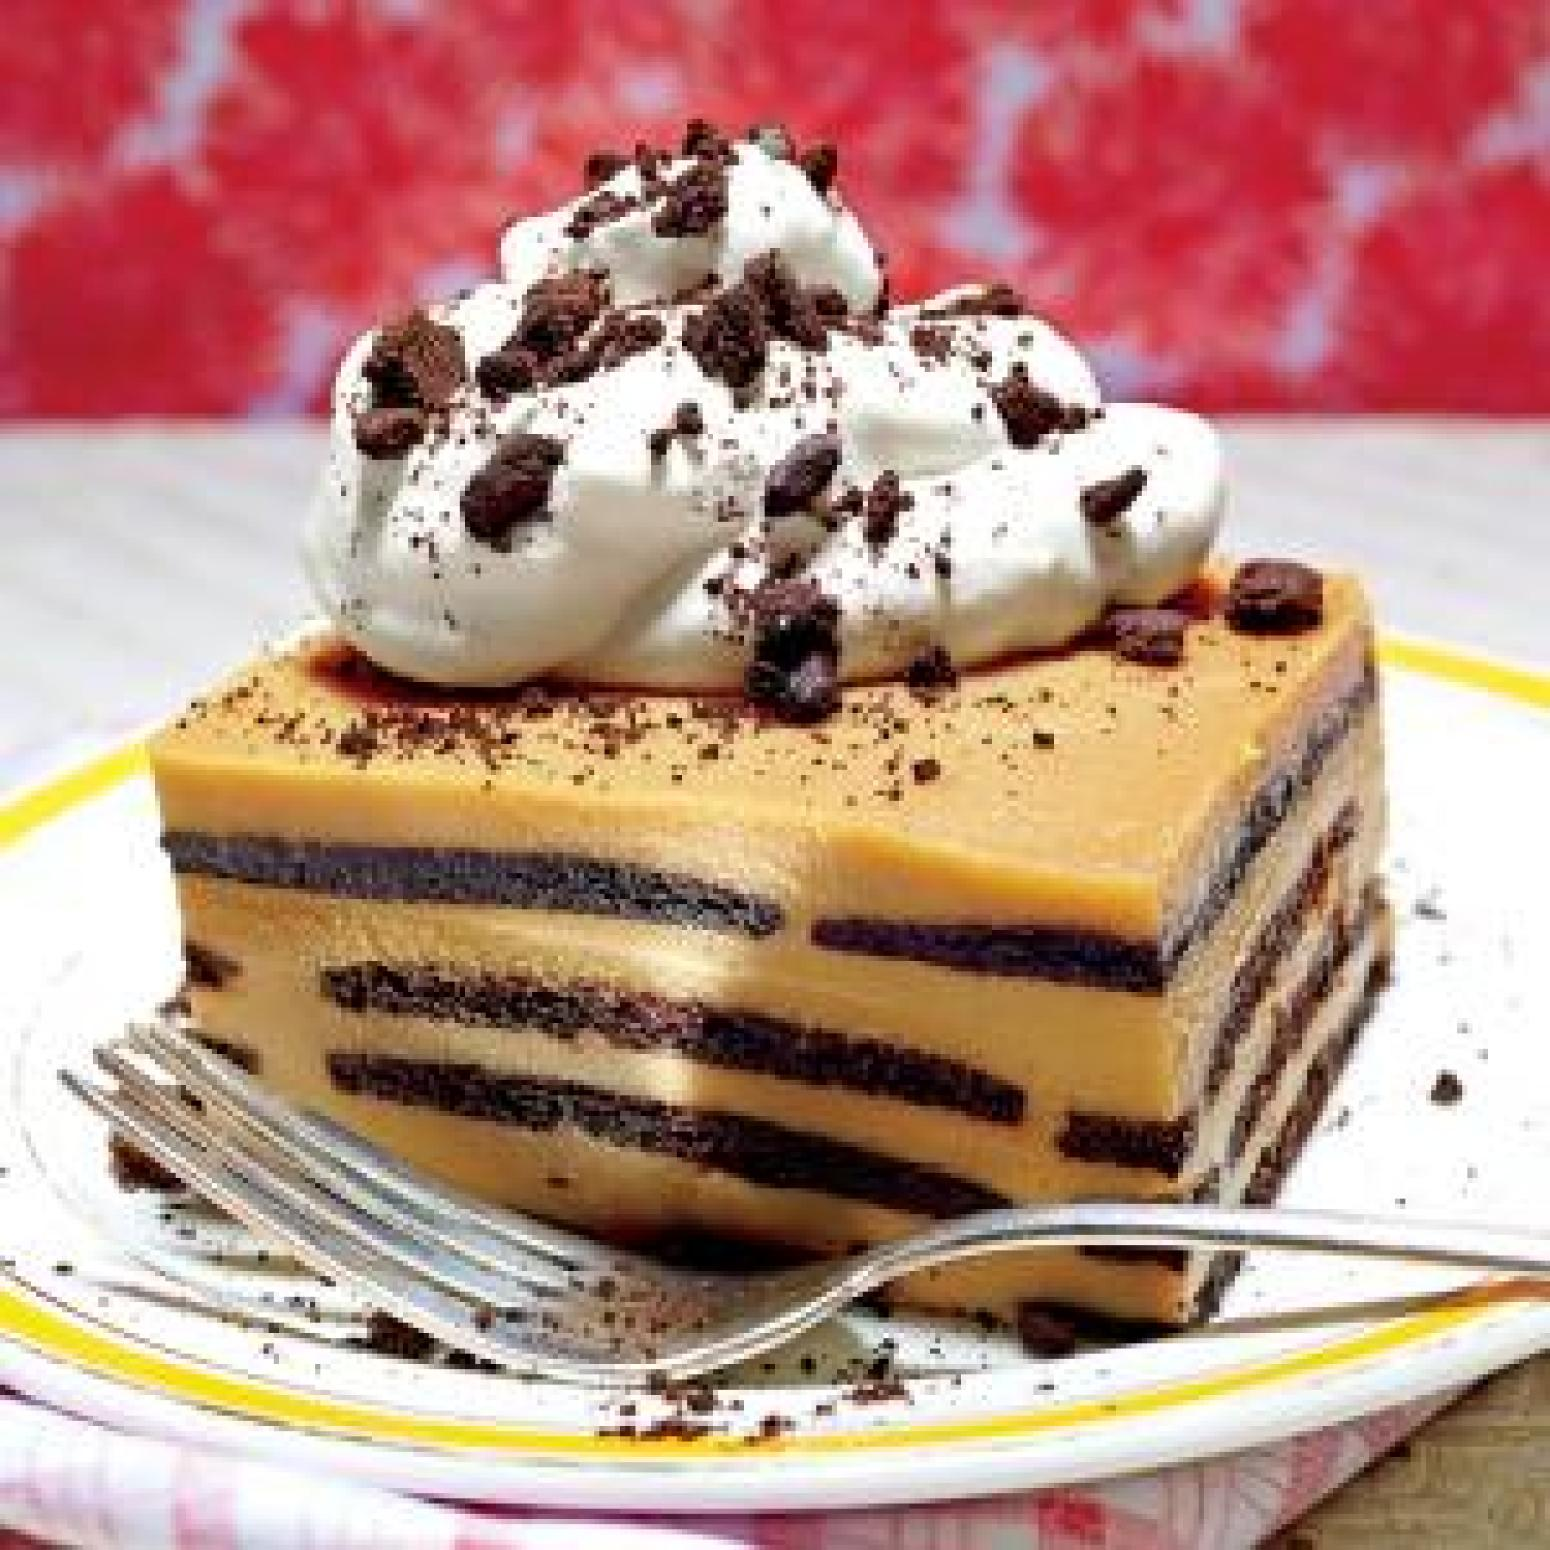 Chocolate bourbon butterscotch ice box cake Recipe | Just A Pinch ...